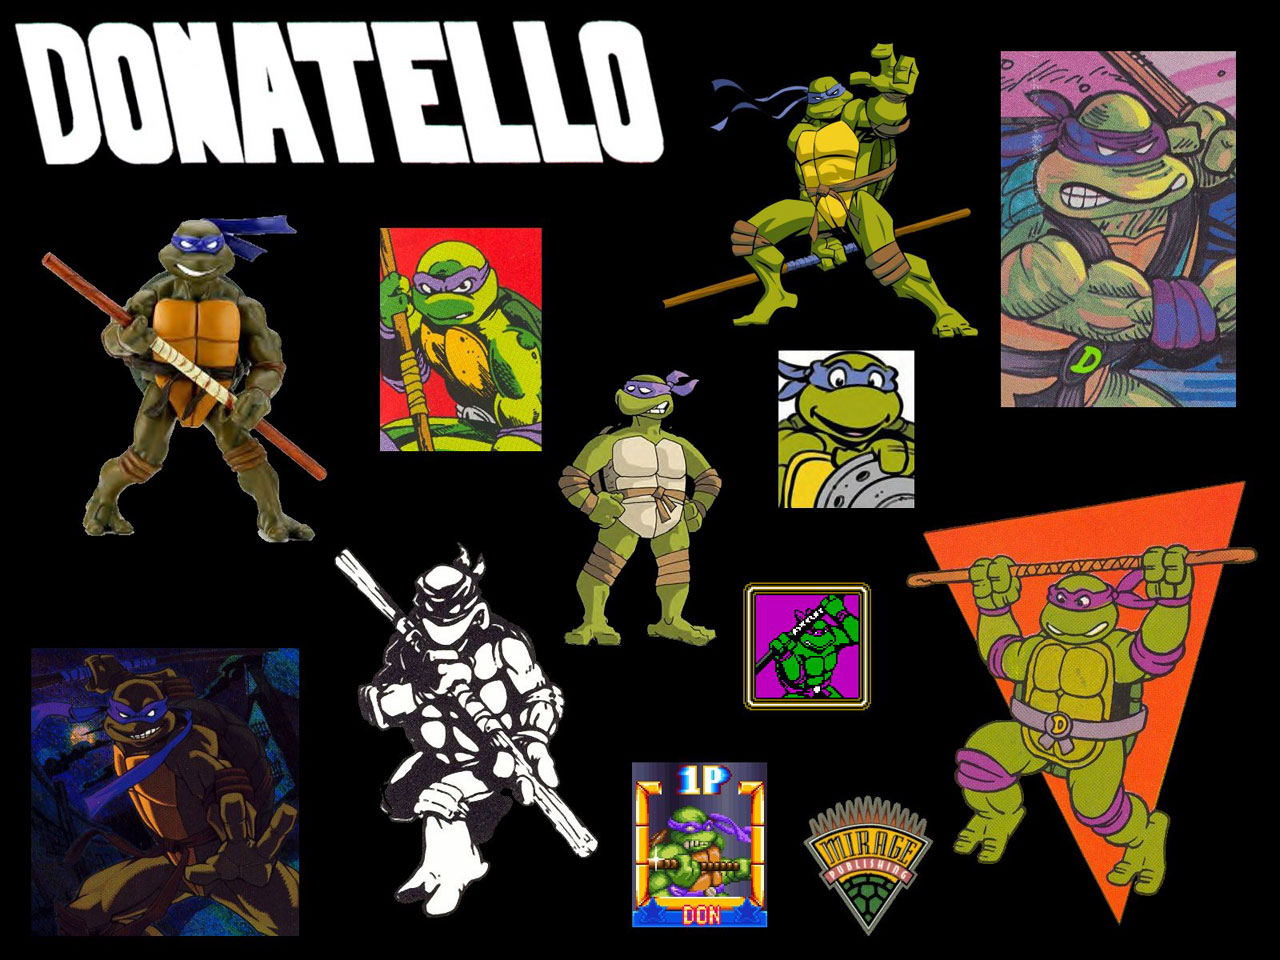 TMNT wallpaper miscellaneous 8 (1280x960)